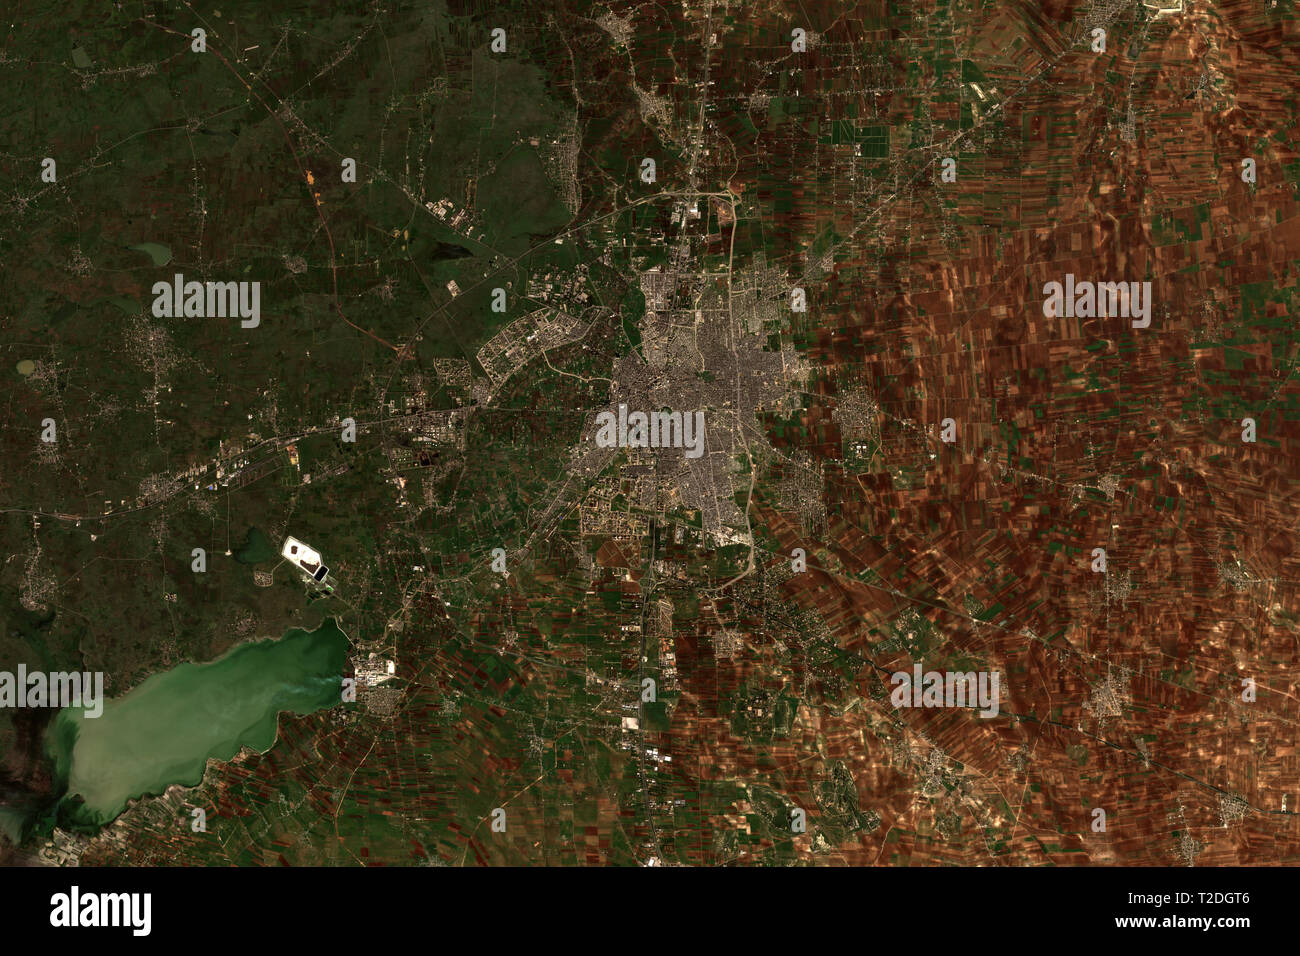 Homs and Qattinah Lake in Syria in February 2019 seen from space - contains modified Copernicus Sentinel Data (2019) - Stock Image